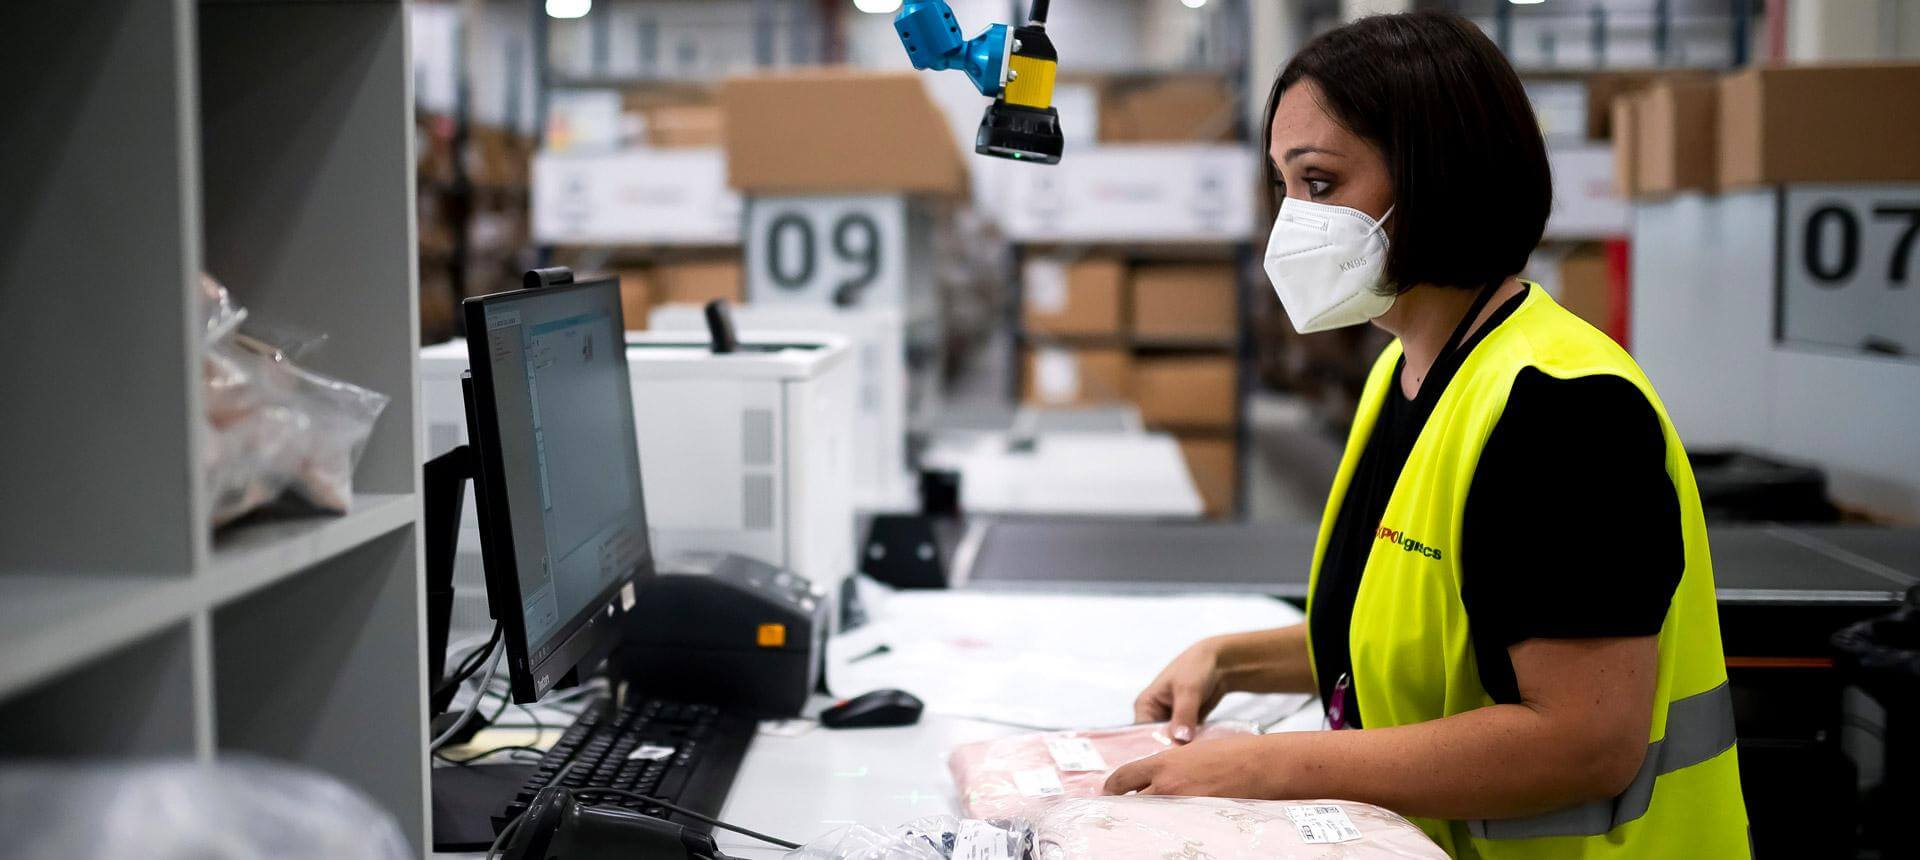 Fixed-mount barcode scanners to speed the reading of inventory